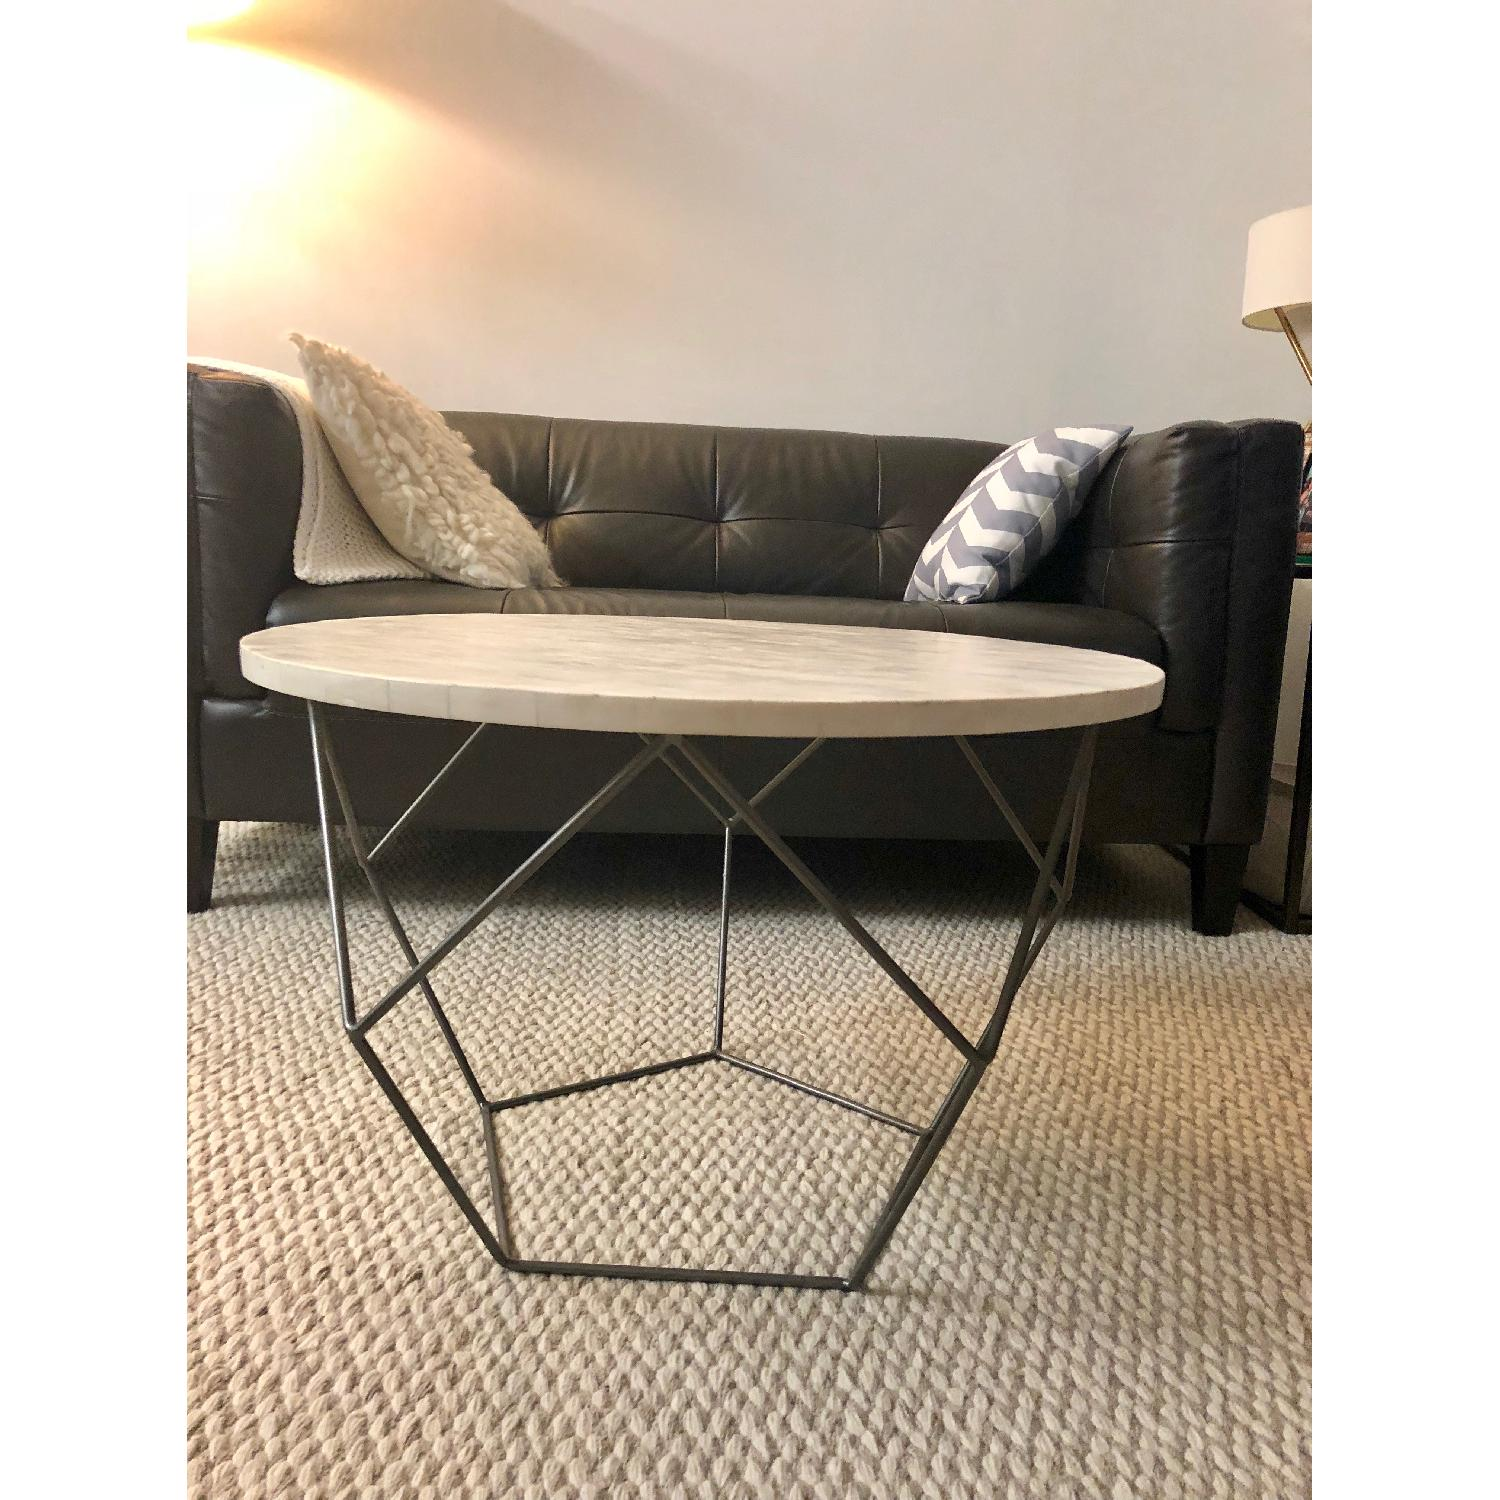 West Elm Origami Coffee Table-1